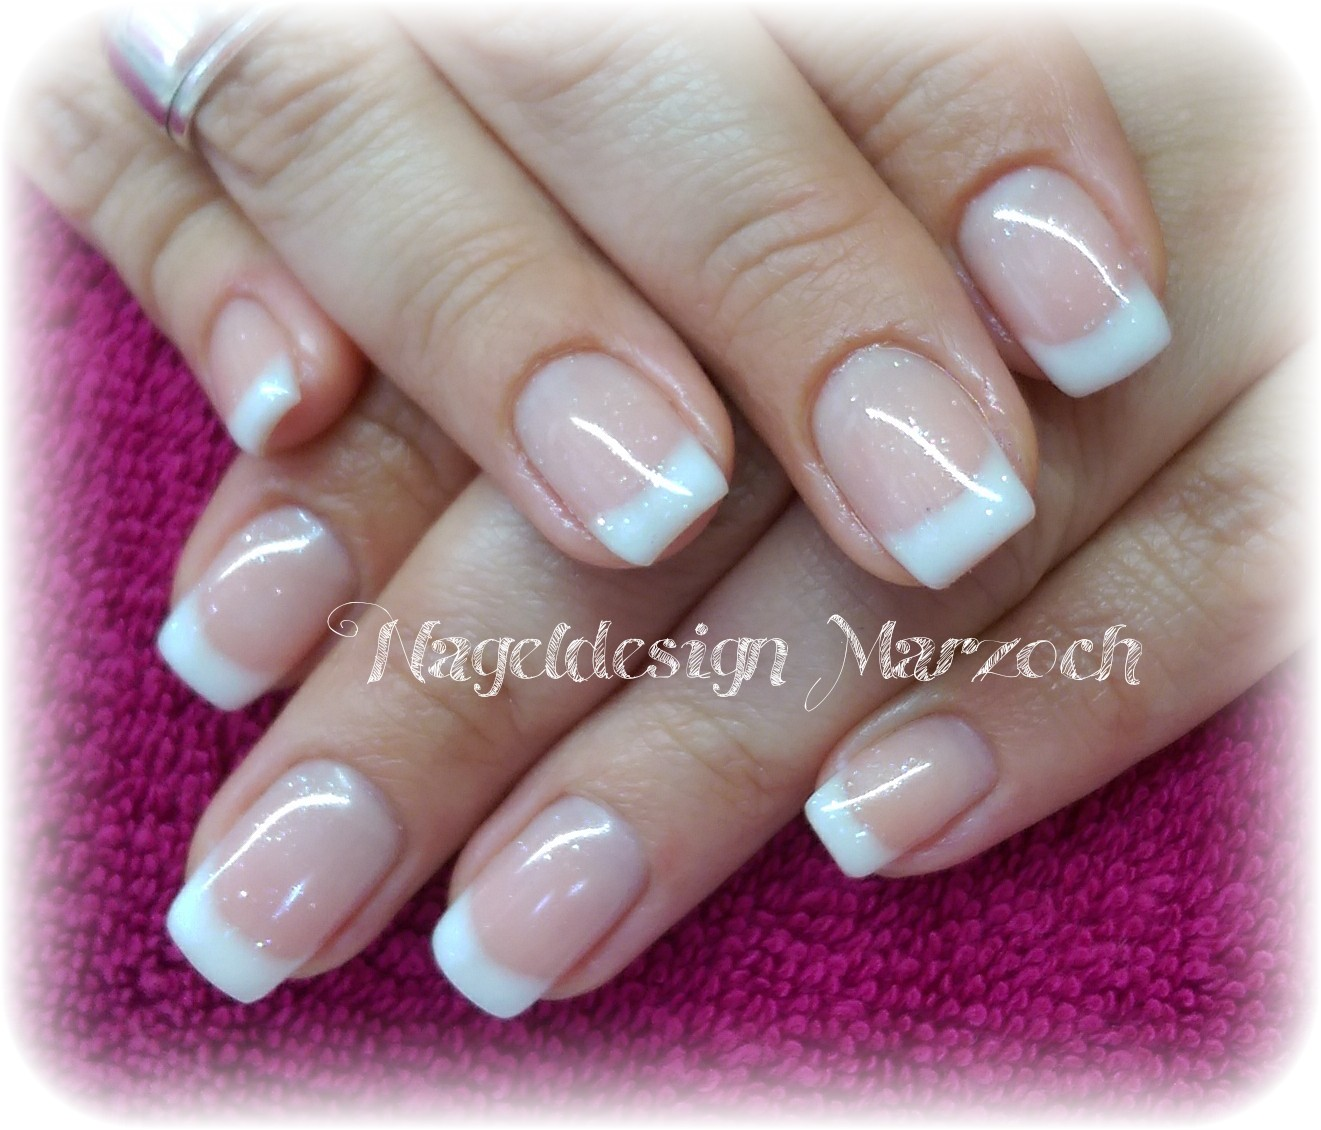 Nagel Bilder Nails Stockfotos And Nails Bilder Alamy